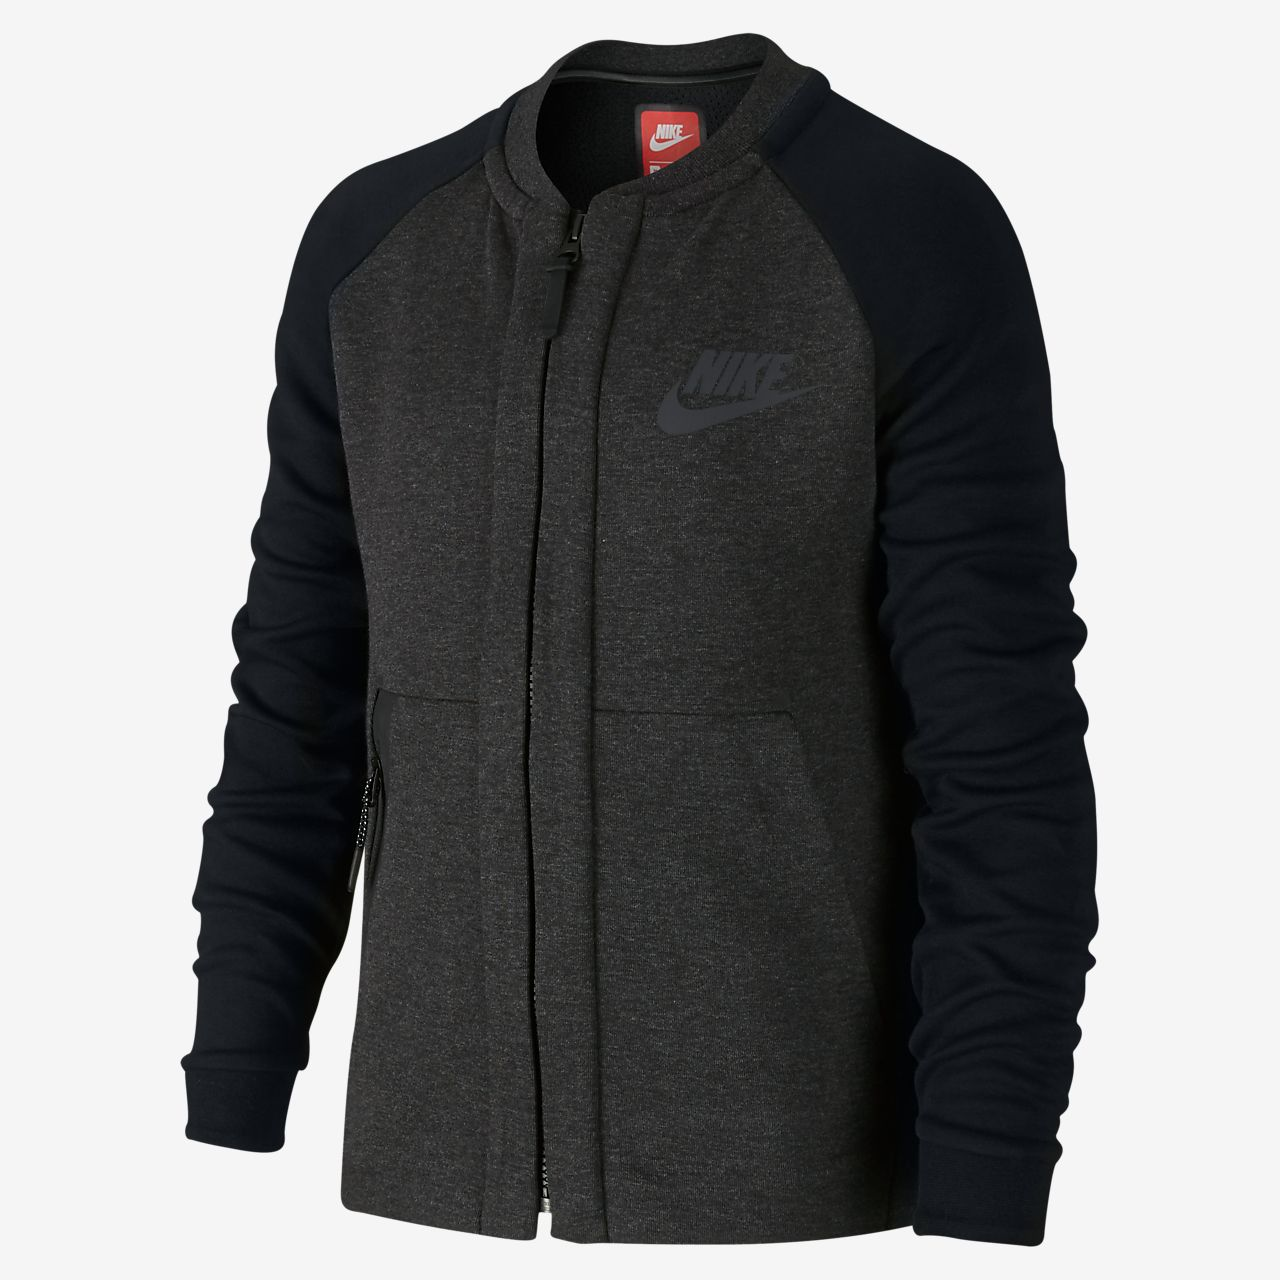 Nike Sportswear Tech Fleece Bomber Older Kids' (Boys') Jacket